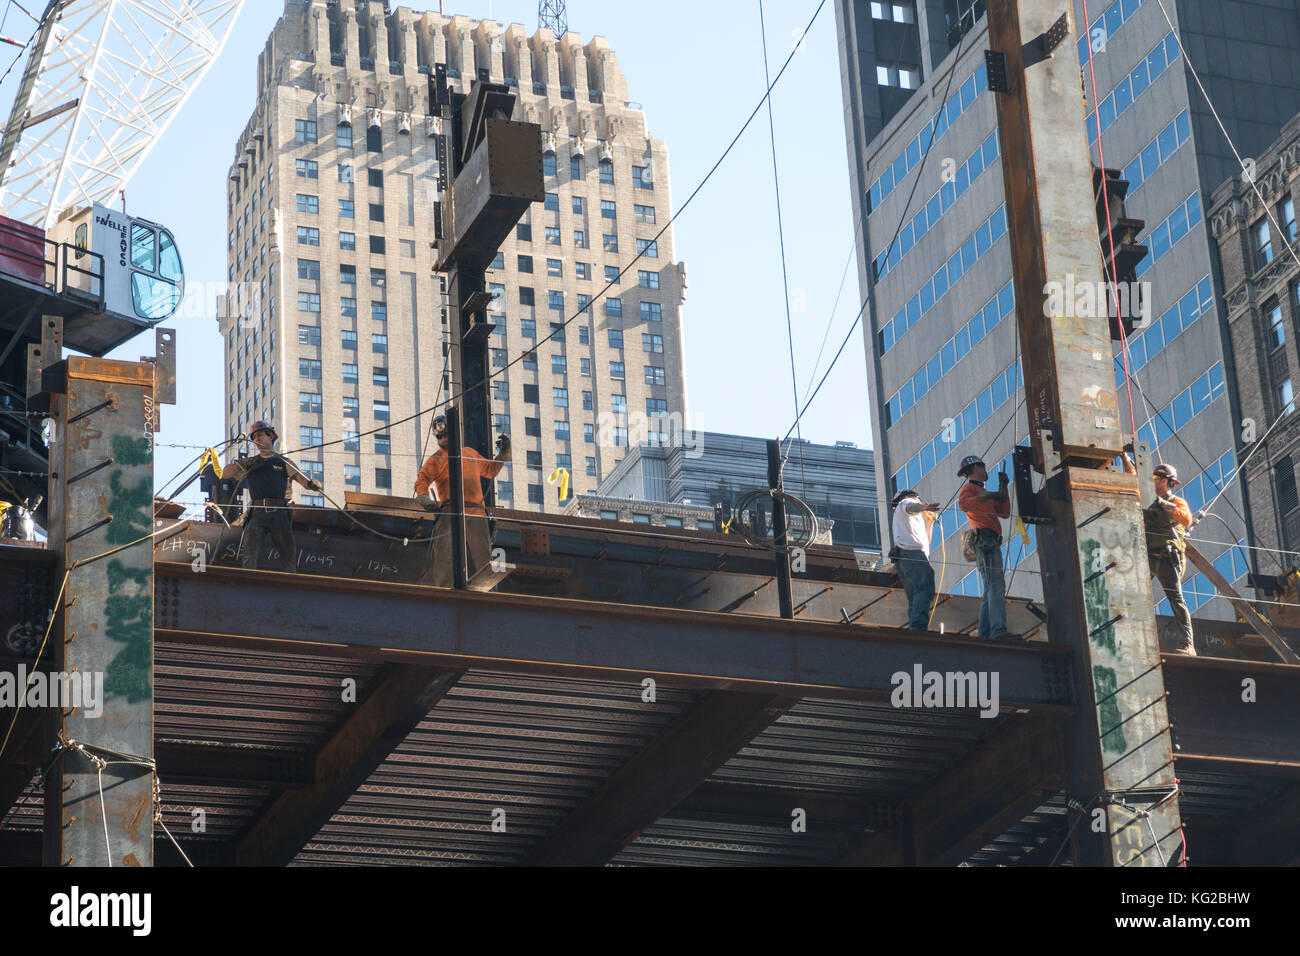 Hi-Rise Construction with tradesmen in Midtown Manhattan, NYC, USA - Stock Image